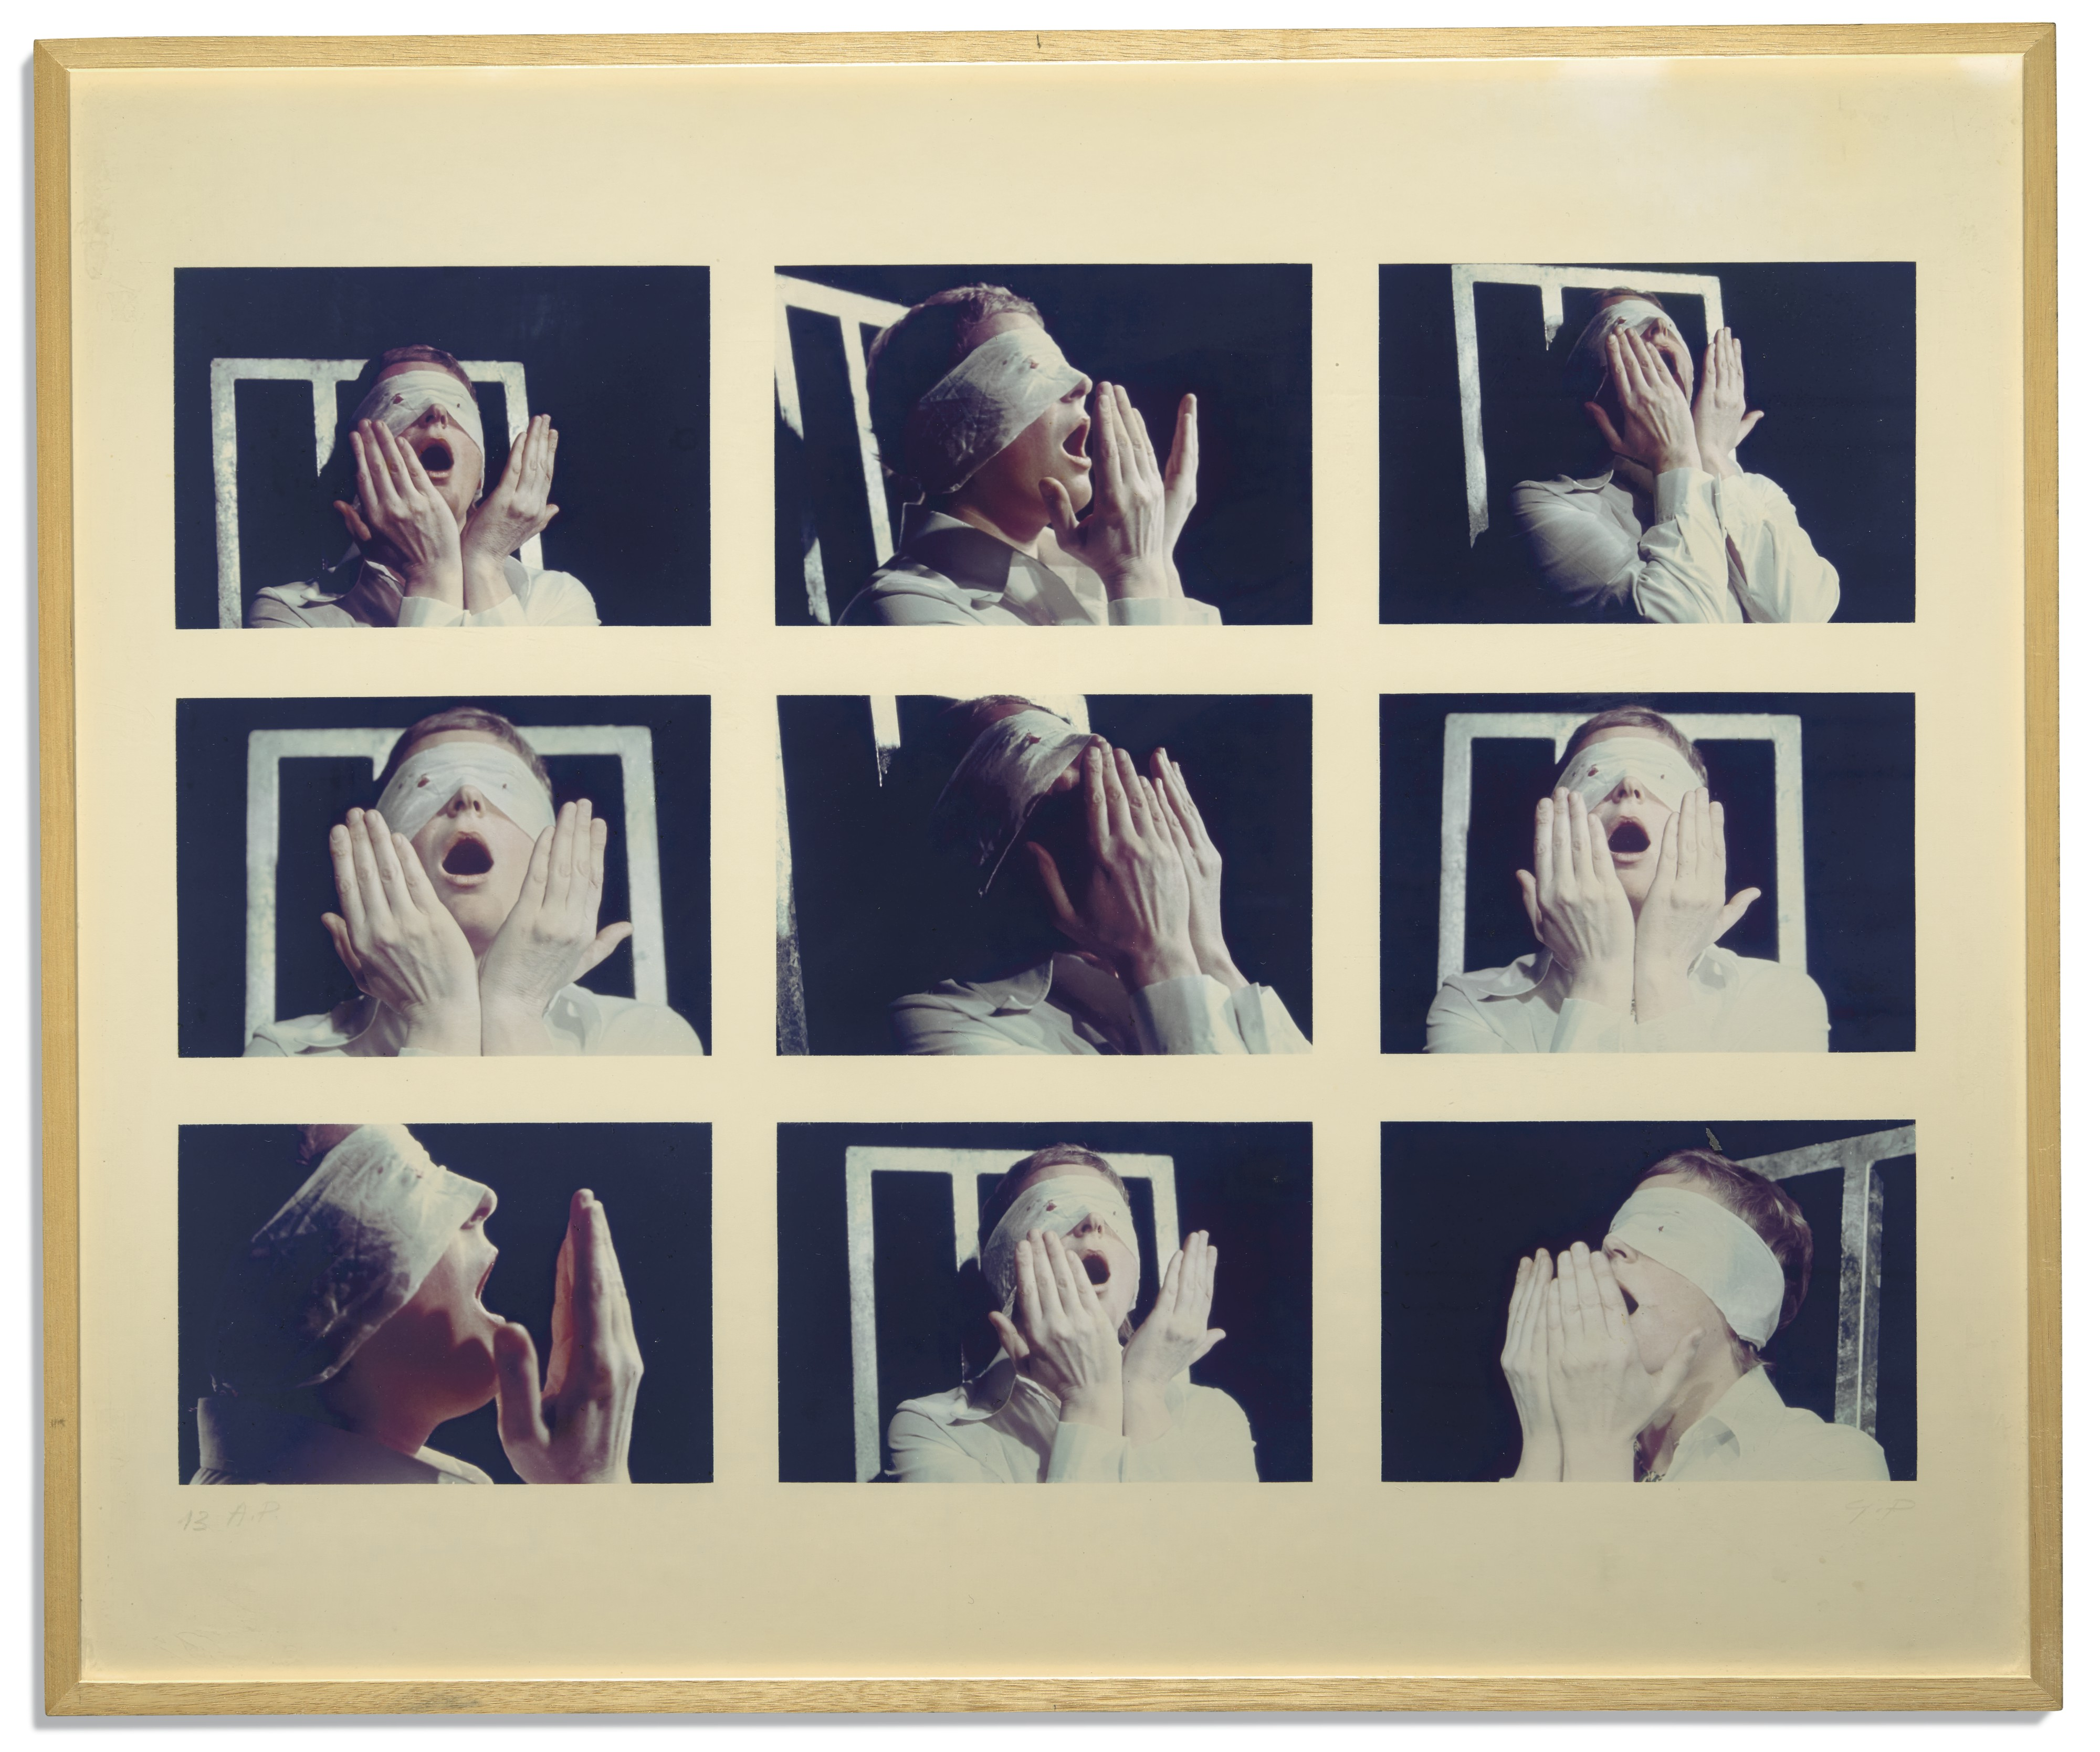 Gina PANE Action Psyché, 1973 (detail) A set of twenty five colour photographs, preparatory drawings, and coloured slides © The Estate of the Artist; Courtesy Richard Saltoun Gallery